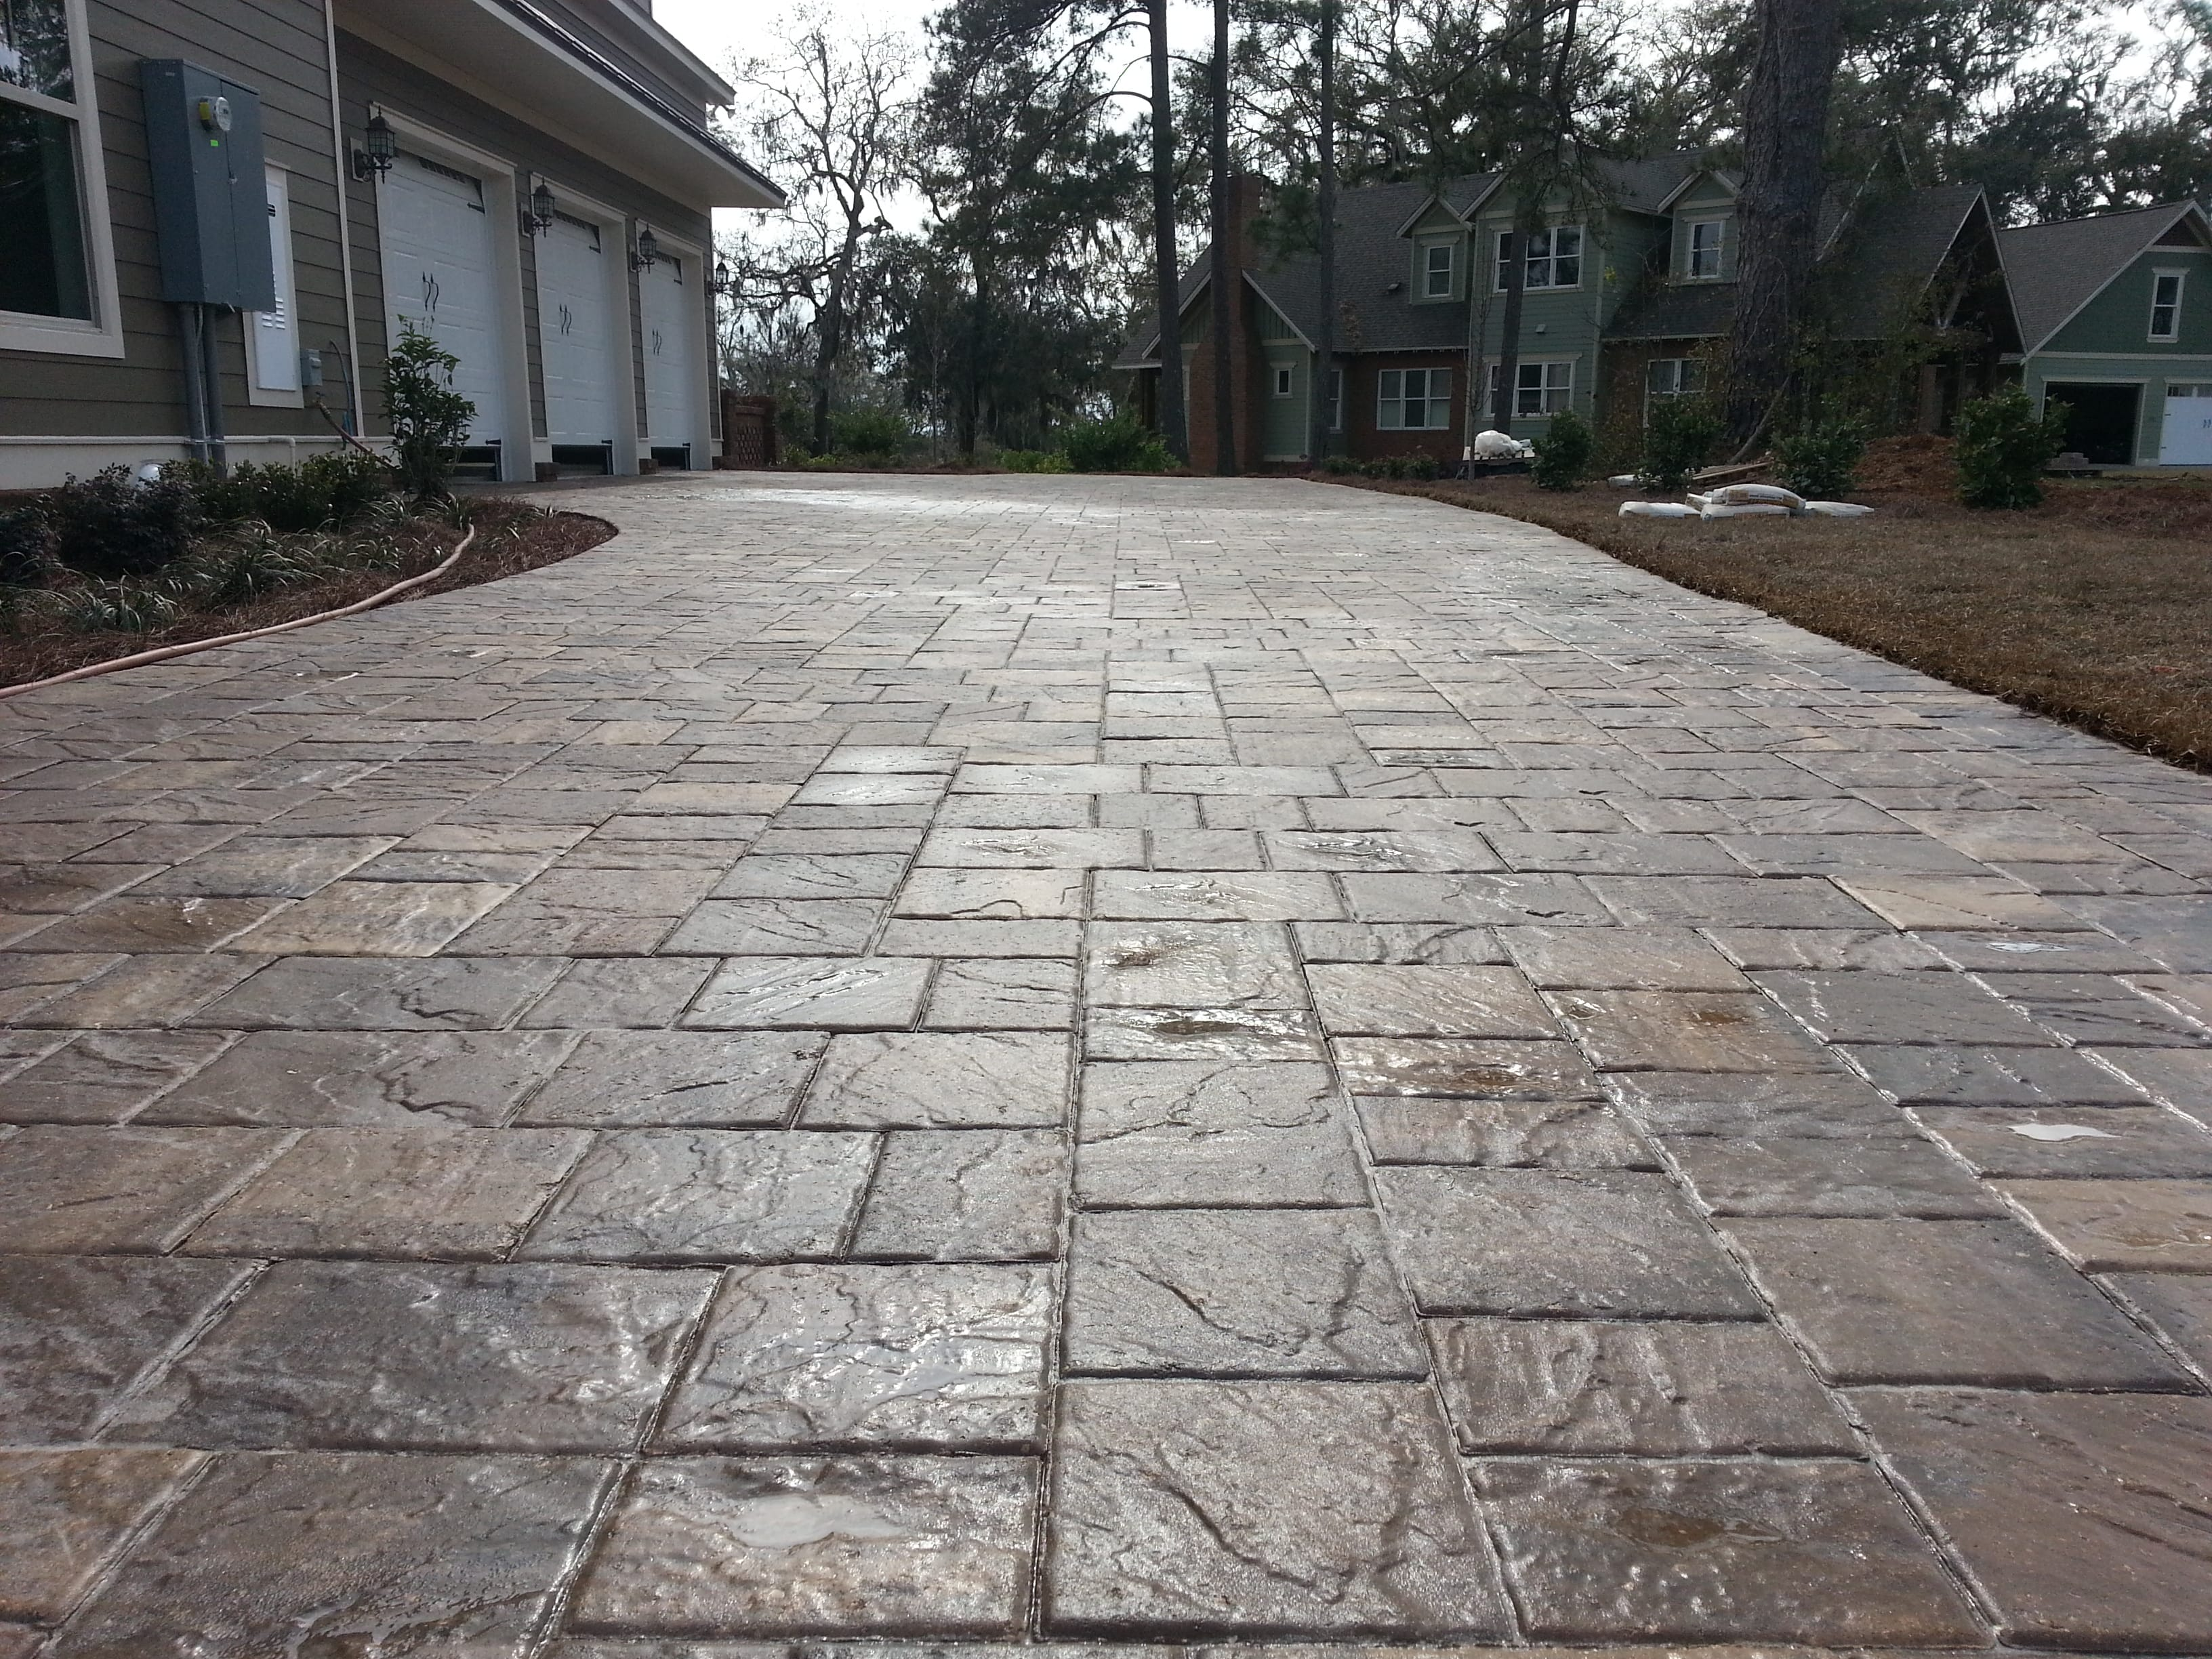 Concrete Paver Driveway Close-up